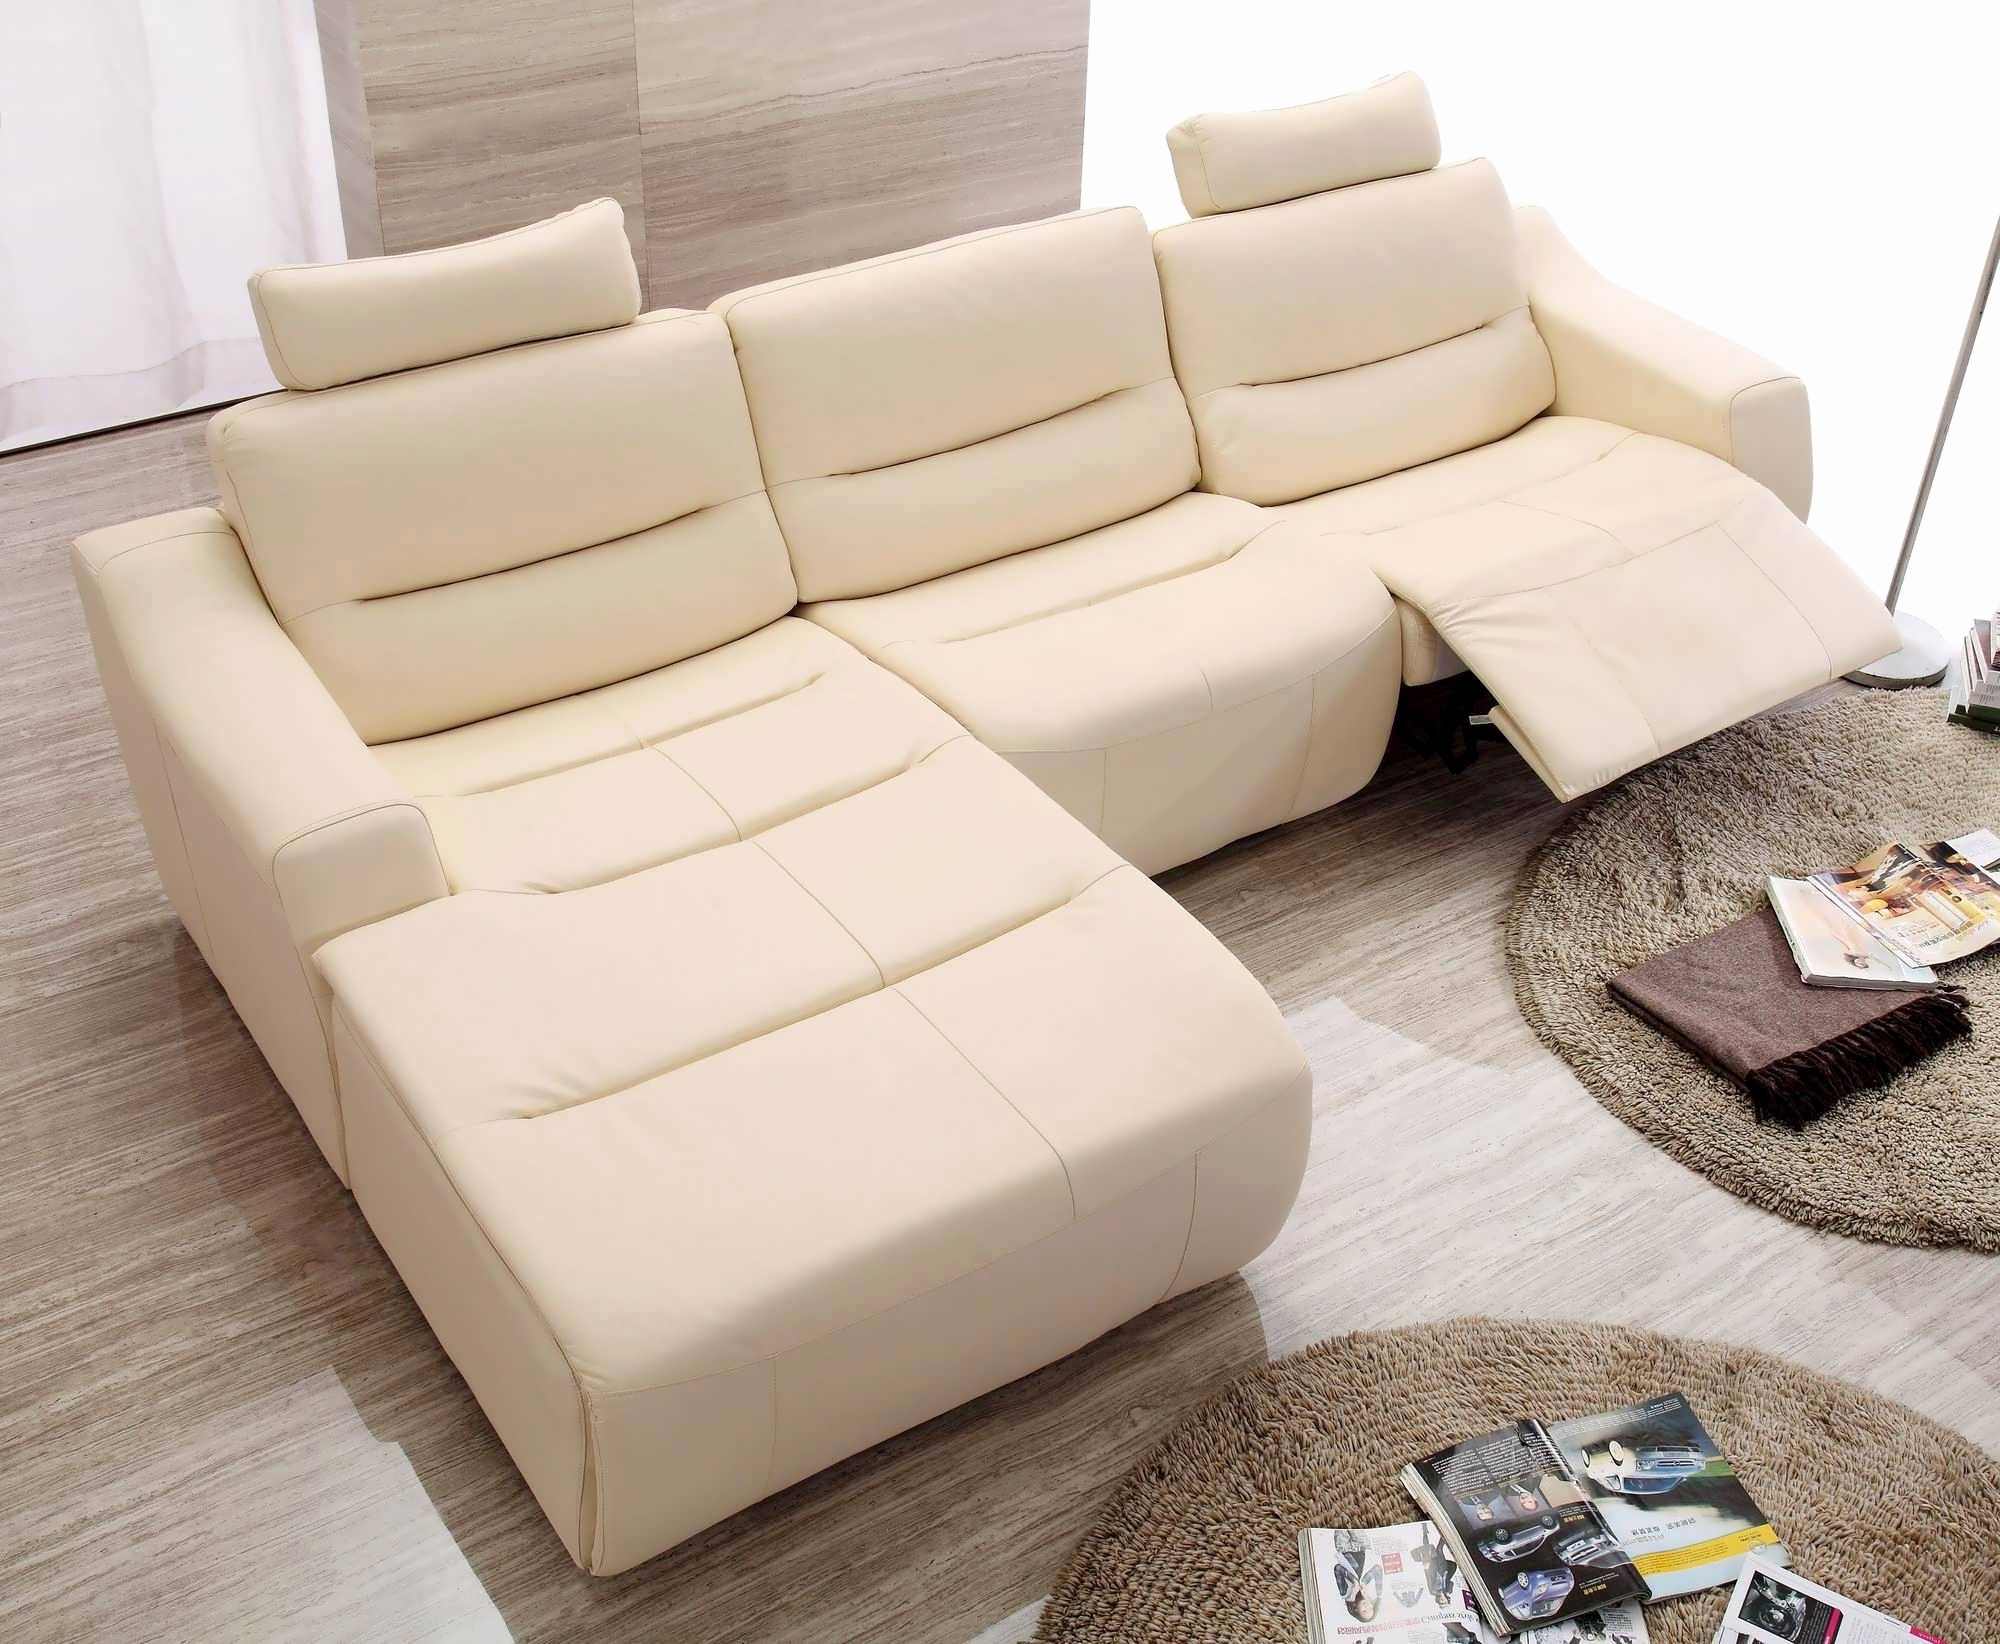 Most Popular Modern Reclining Leather Sofas For Sofa : Small Leather Sectional Sofa Elegant Recliners Chairs (View 15 of 20)